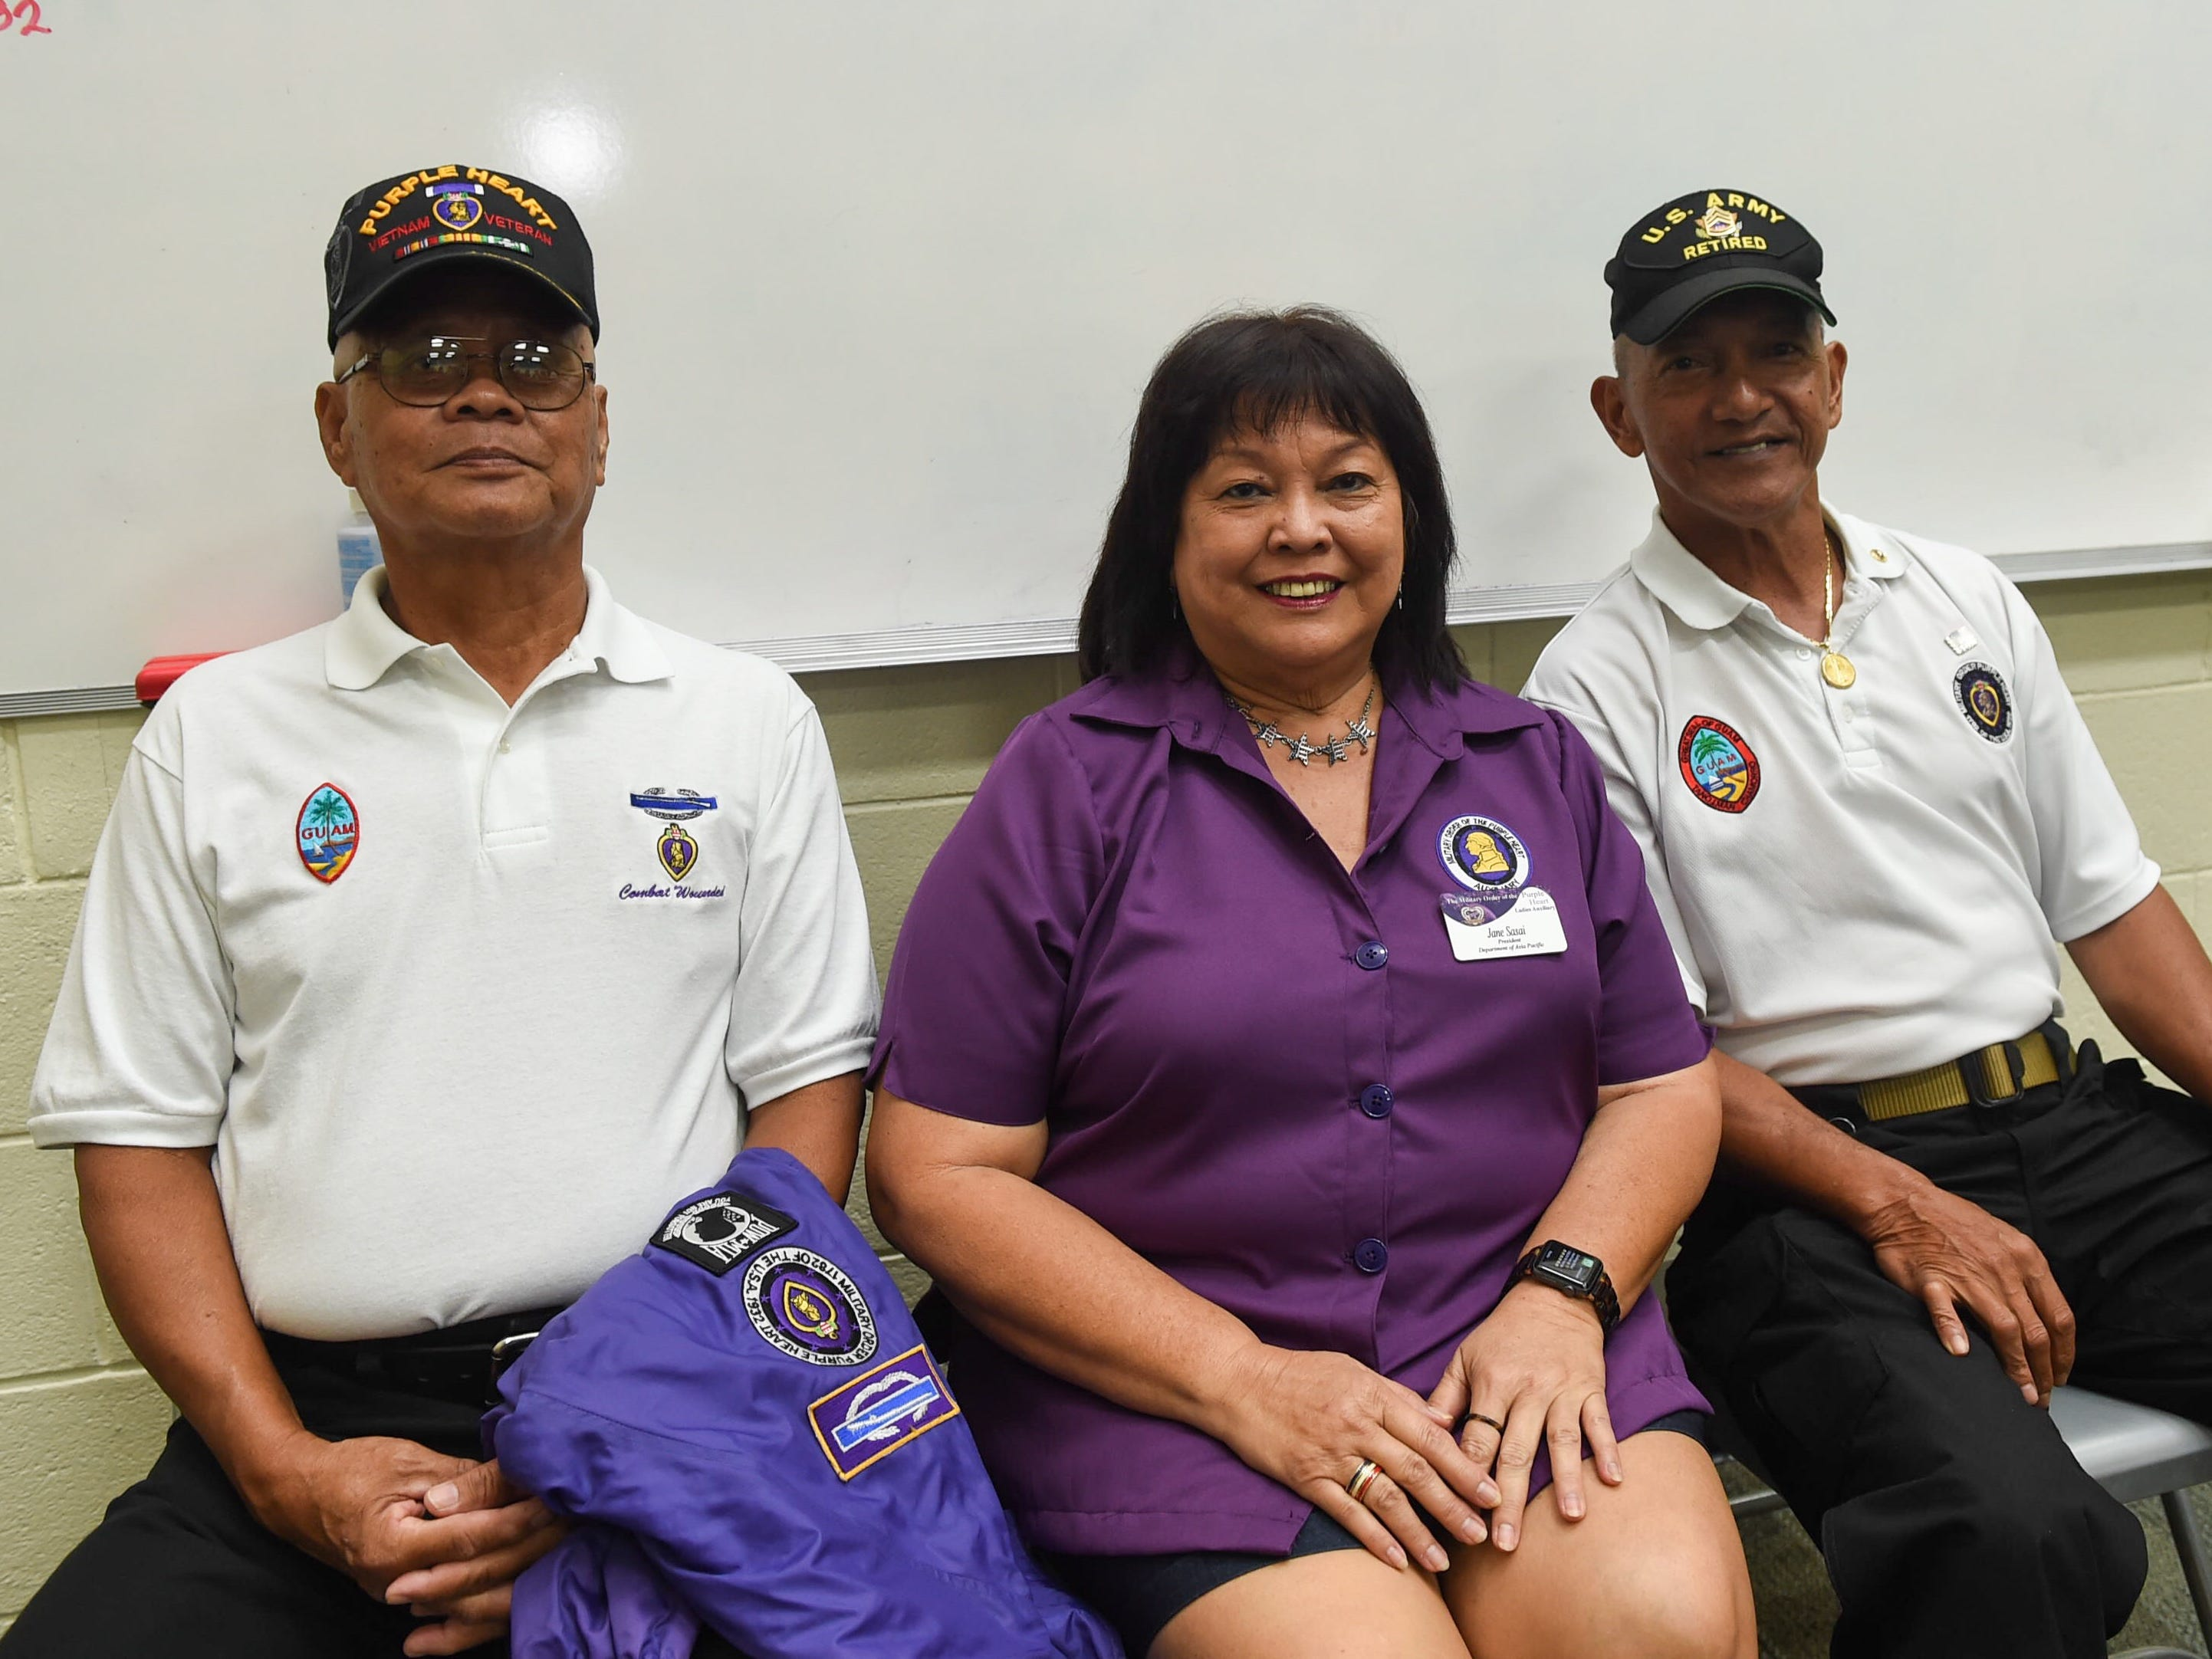 Veterans Thomas Mendiola, left, and Anthony Lukeala with Jane Sasai, Military Order of the Purple Heart Ladies Auxilary president, at John F. Kennedy High School, Nov. 9, 2018.